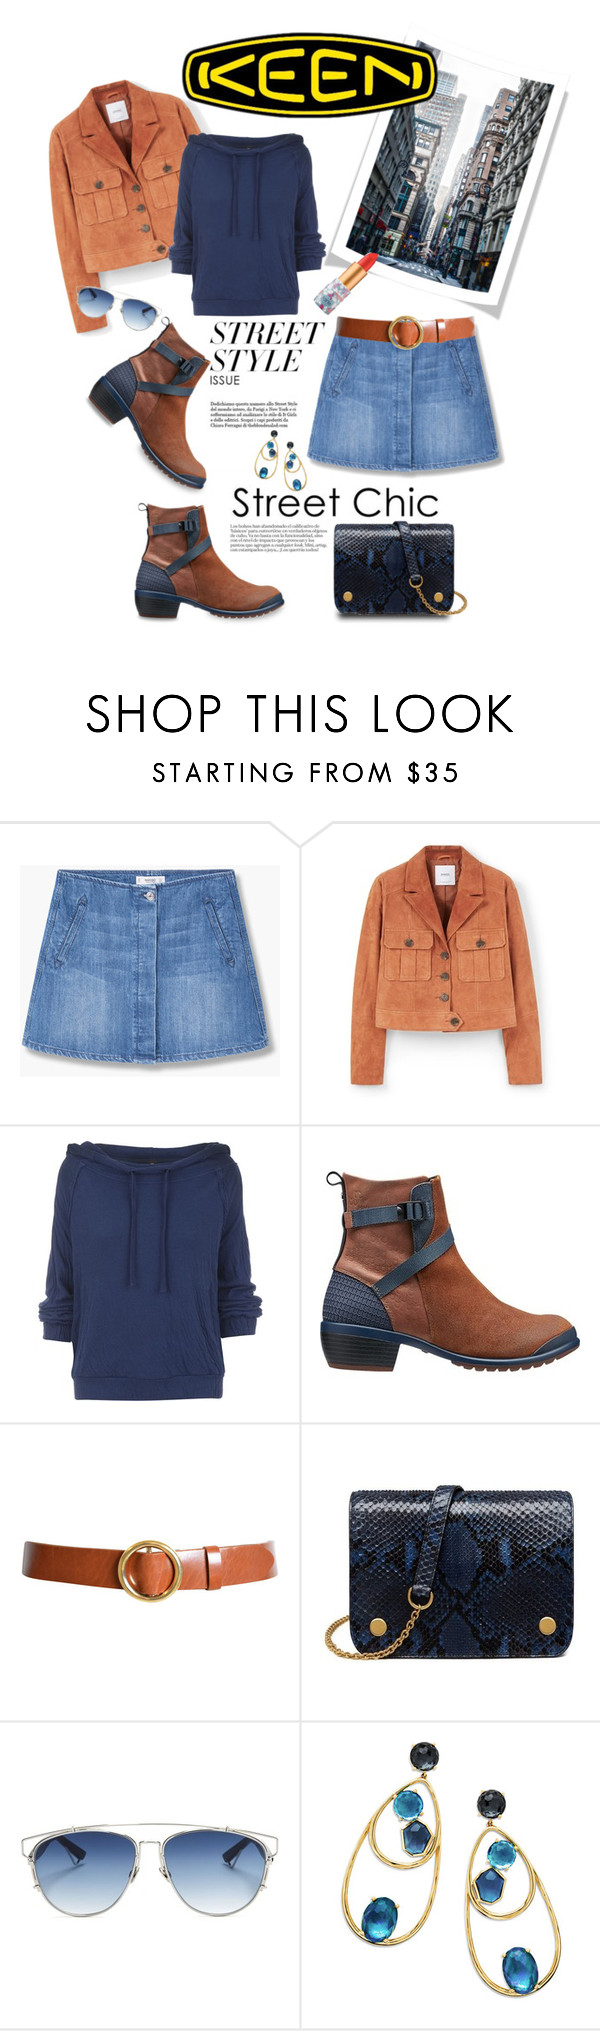 """""""So Fresh and So Keen: Contest Entry"""" by shortyluv718 ❤ liked on Polyvore featuring MANGO, Chiara Ferragni, Free People, Keen Footwear, Frame Denim, Mulberry, Christian Dior, Ippolita and keen"""